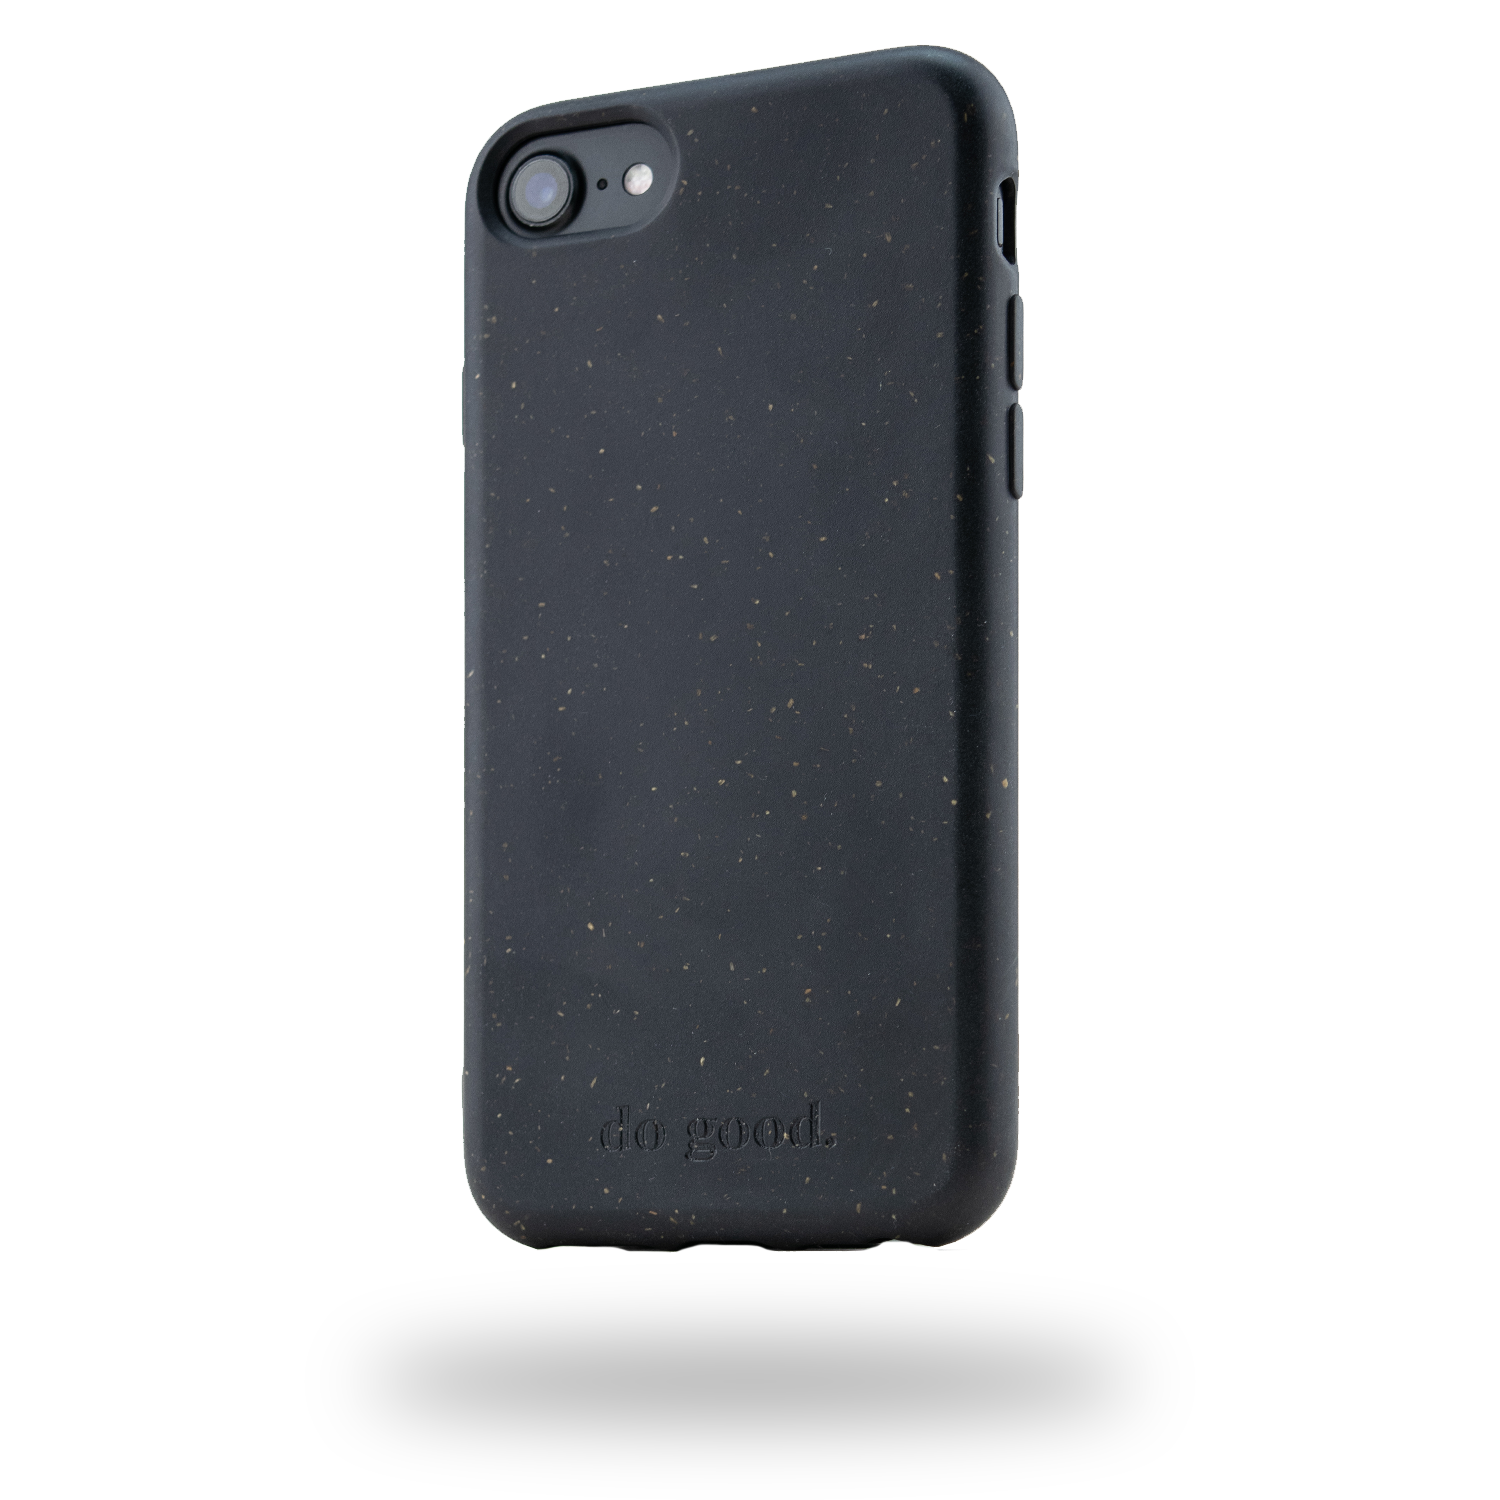 iPhone 6/6s/7/8/7 Plus/8 Plus Bio Case